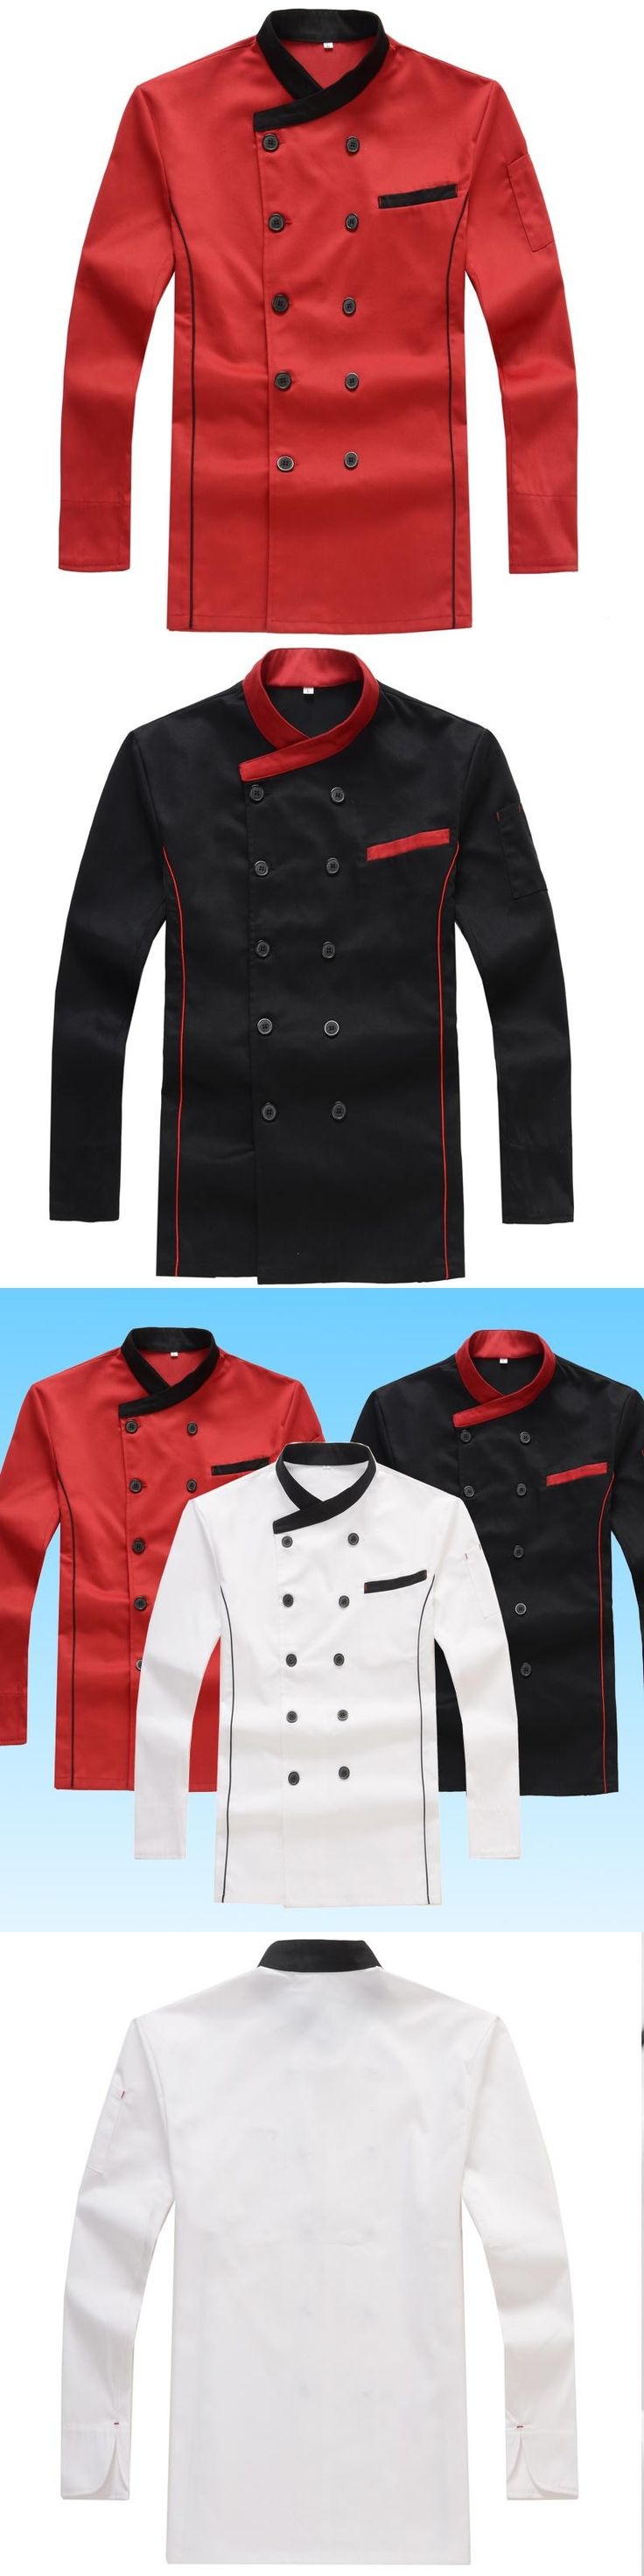 Hotel Chef Wear Long Sleeved Autumn Cake Baking Western-style Food Kitchen Chef Uniforms for Men and Women